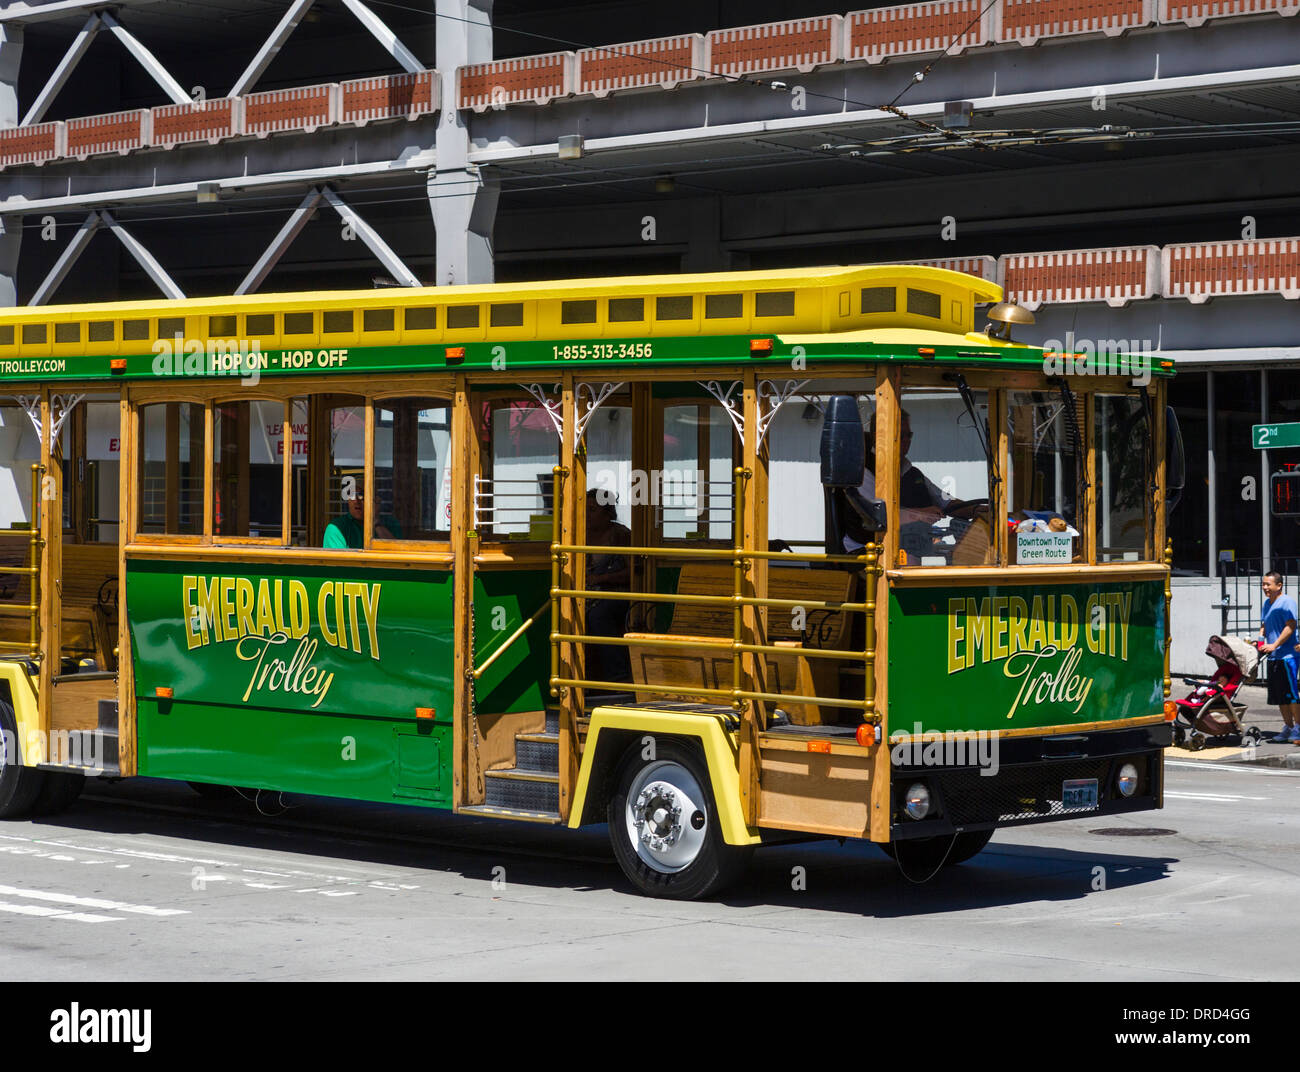 Emerald City Trolley in downtown Seattle, Washington, USA - Stock Image